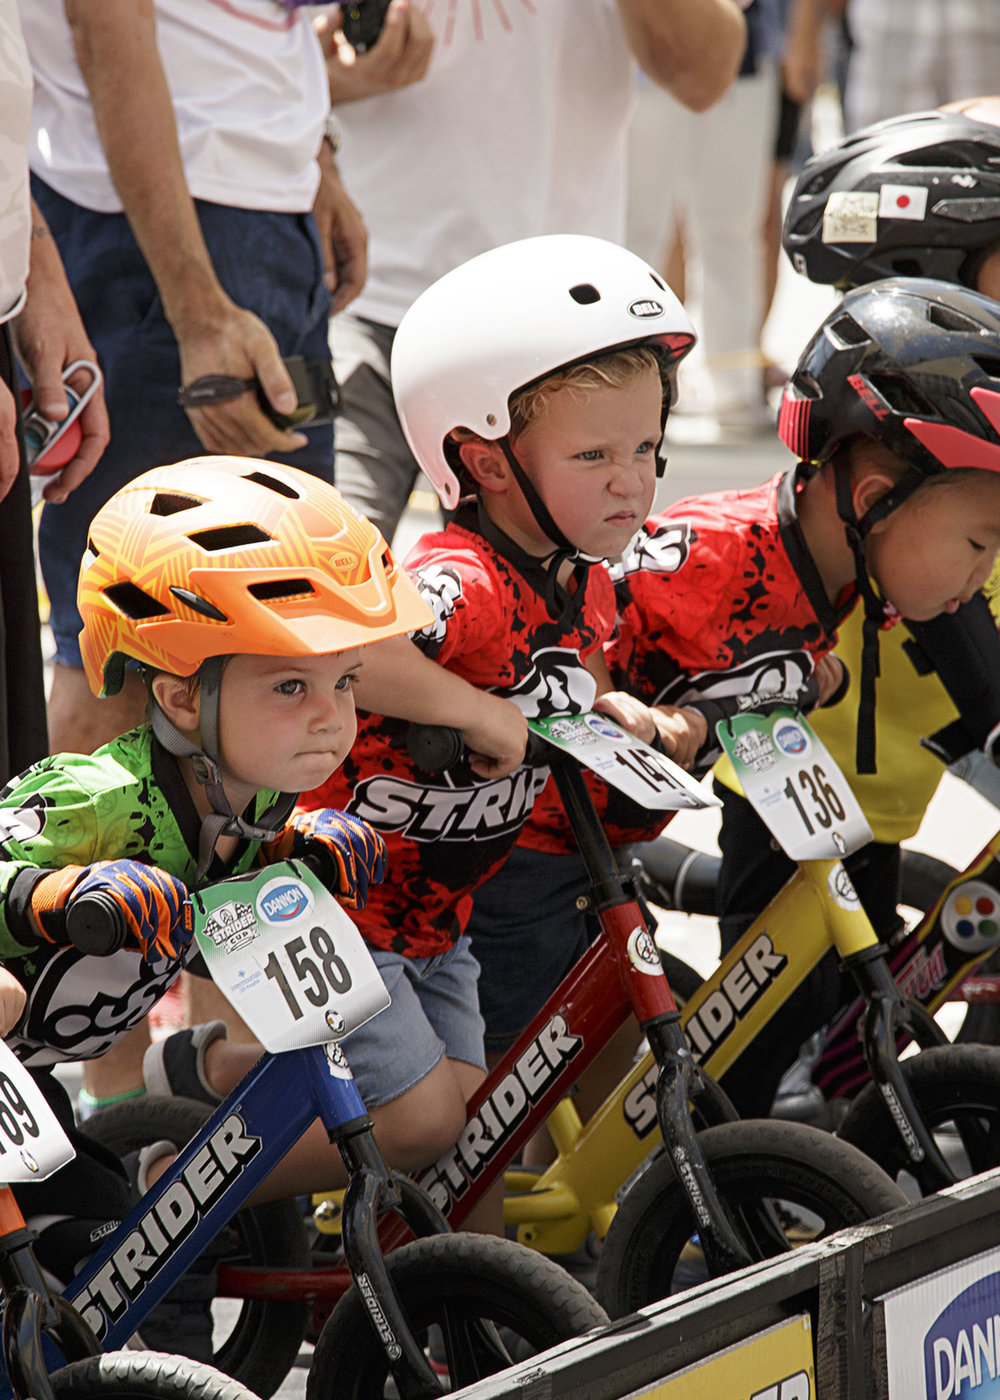 Boston's World Cup Strider Bike Race